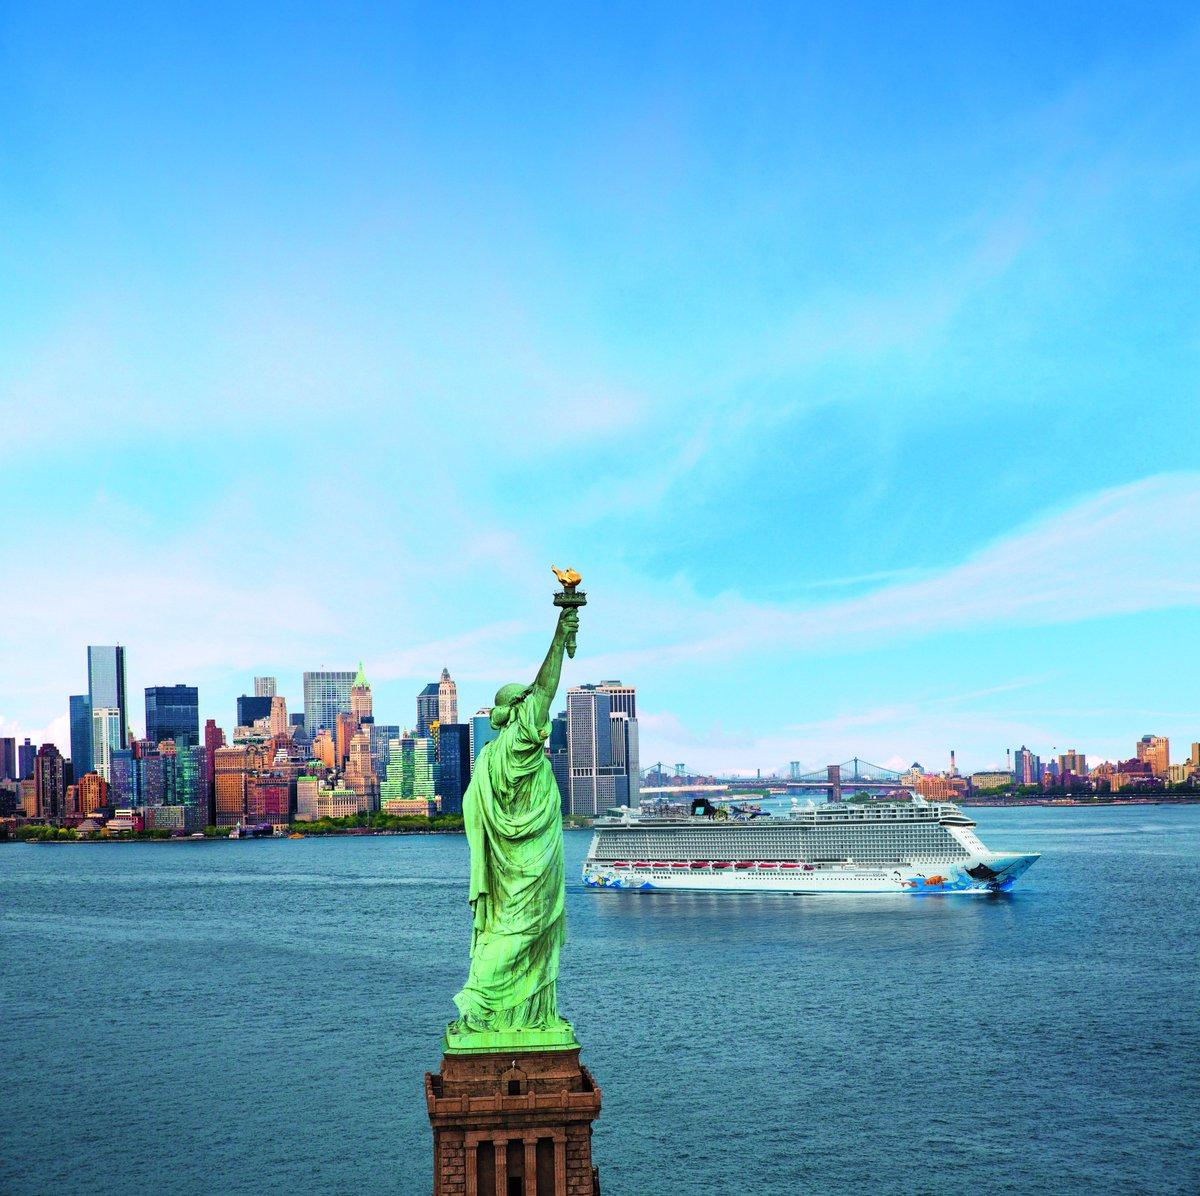 From Miami to the Big Apple, Norwegian Escape sets sail from NYC in May! https://t.co/BEnImB8y1m https://t.co/VAzeKfEOrJ